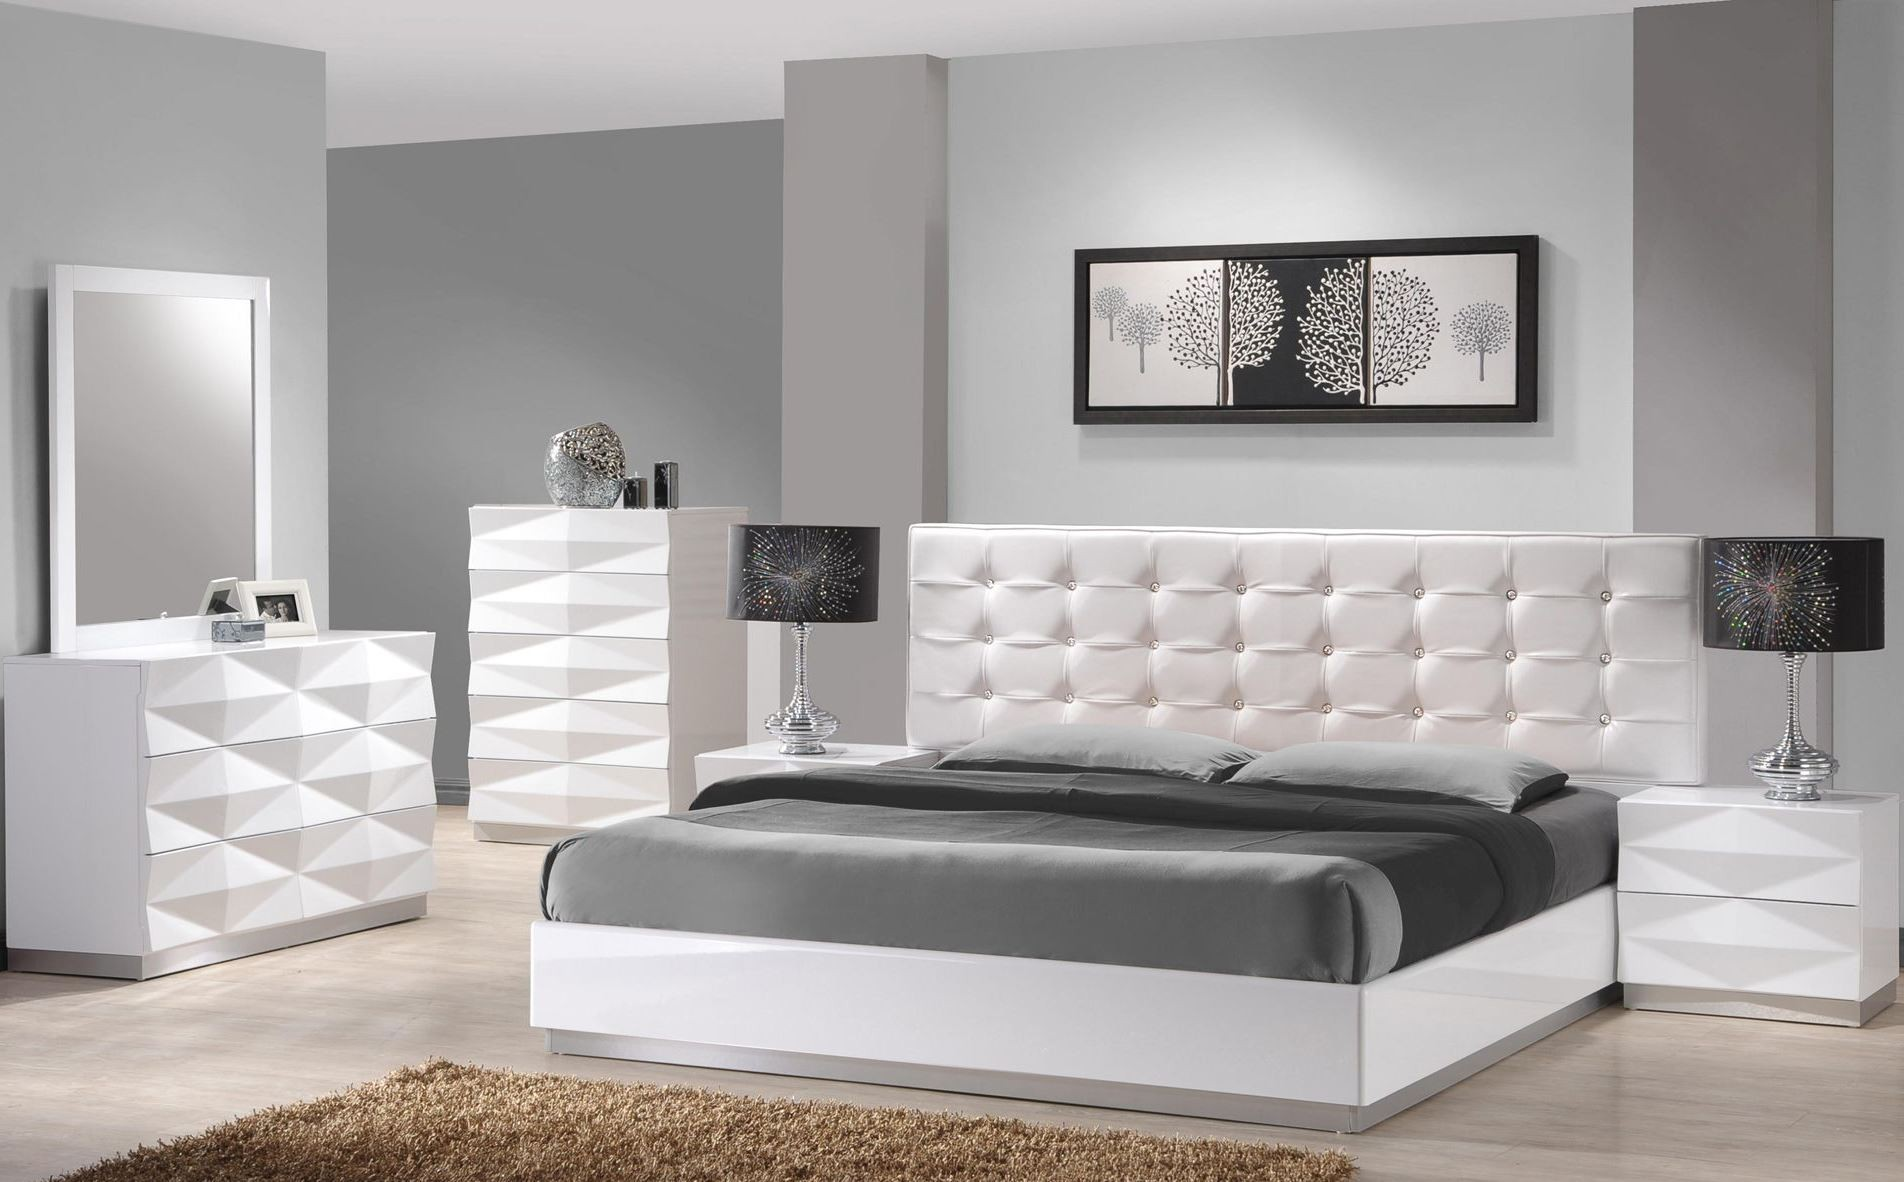 Bedroom sets coleman furniture - Verona White Lacquer Platform Bedroom Set